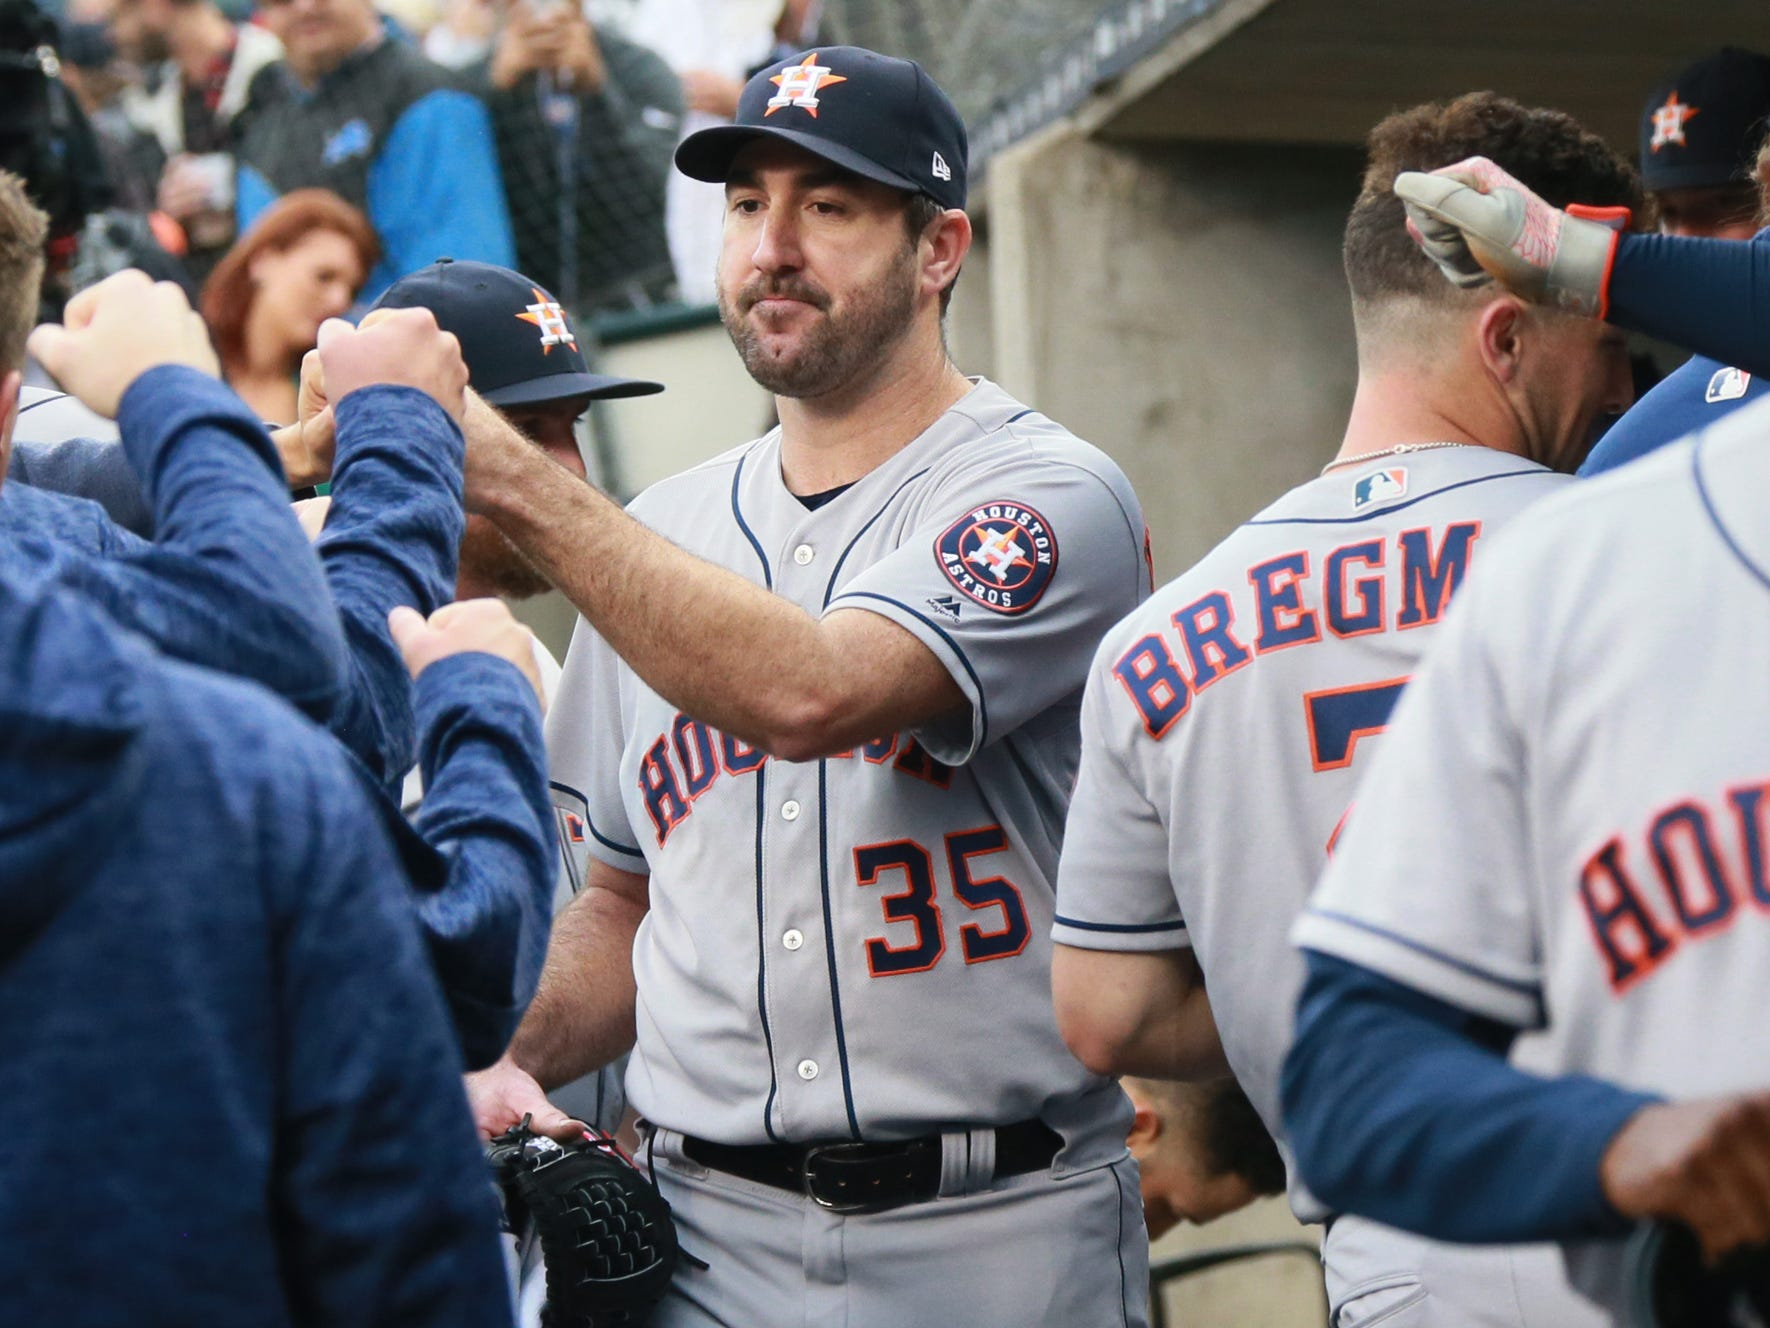 Astros pitcher Justin Verlander (35) fist bumps teammates in the visitors dugout before the Detroit Tigers take on the Houston Astros Monday, Sept. 10, 2018, at Comerica Park.